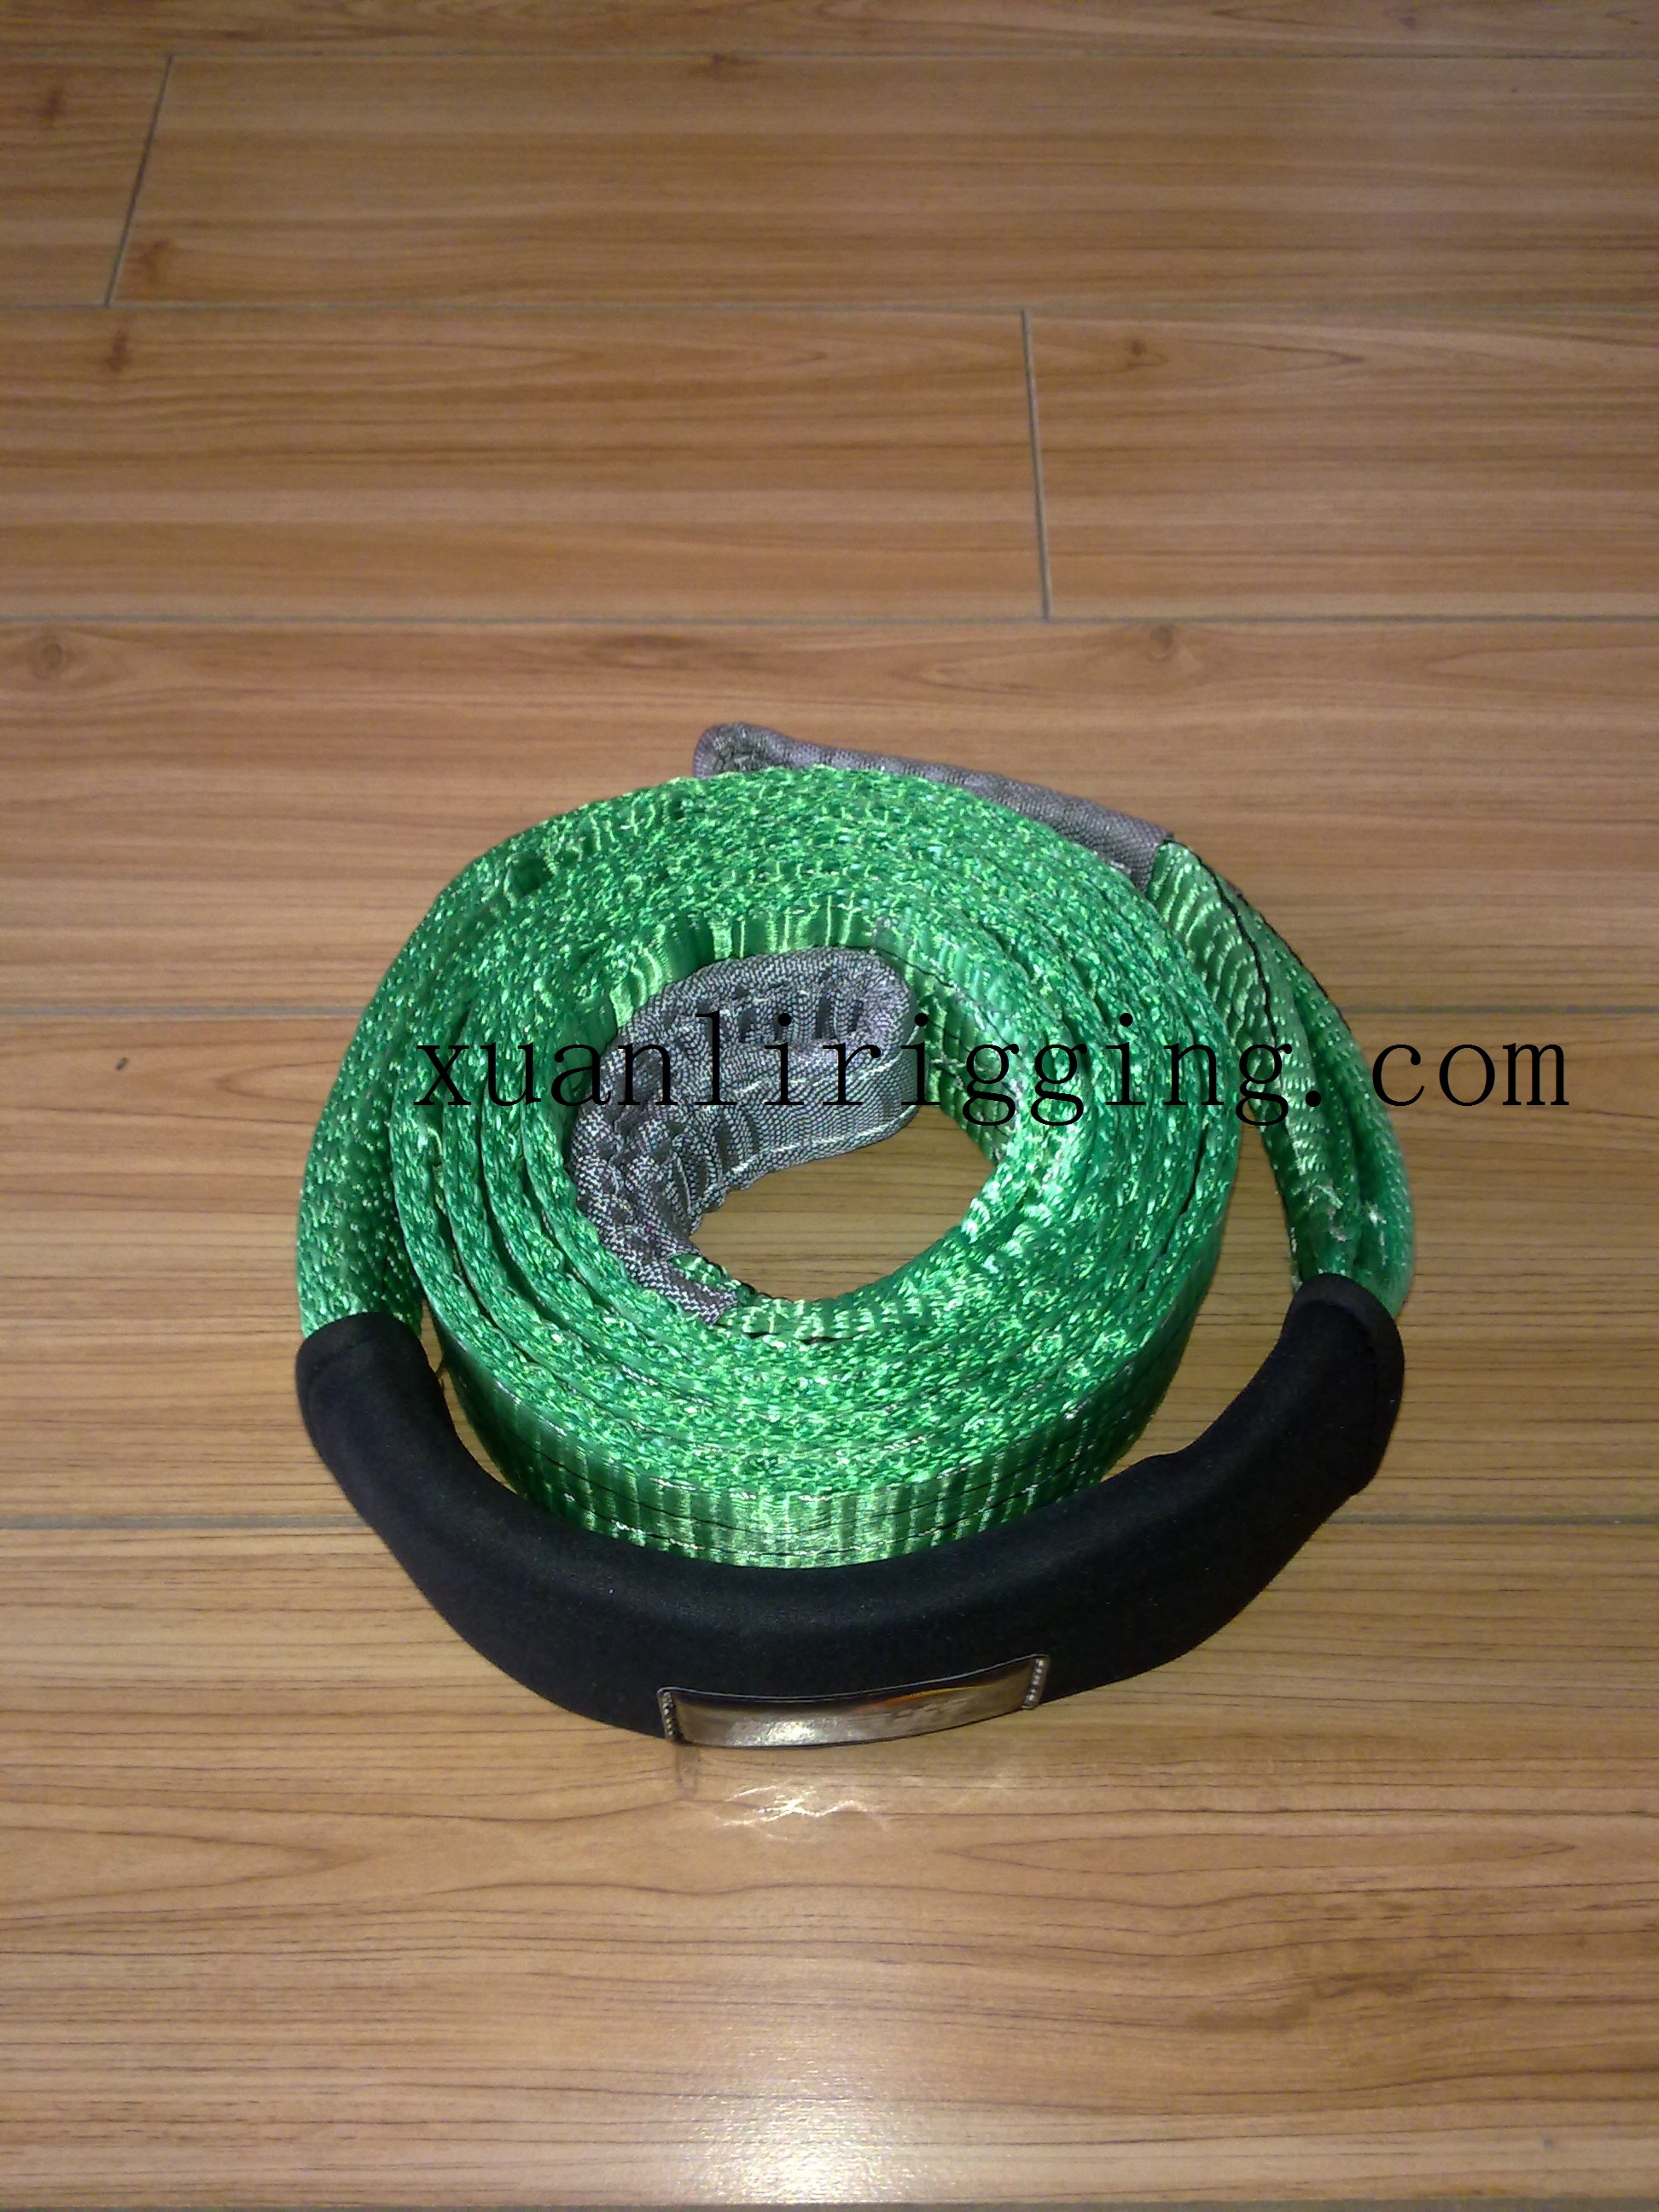 tree trunk protector tree strap tree saver 12T 3m